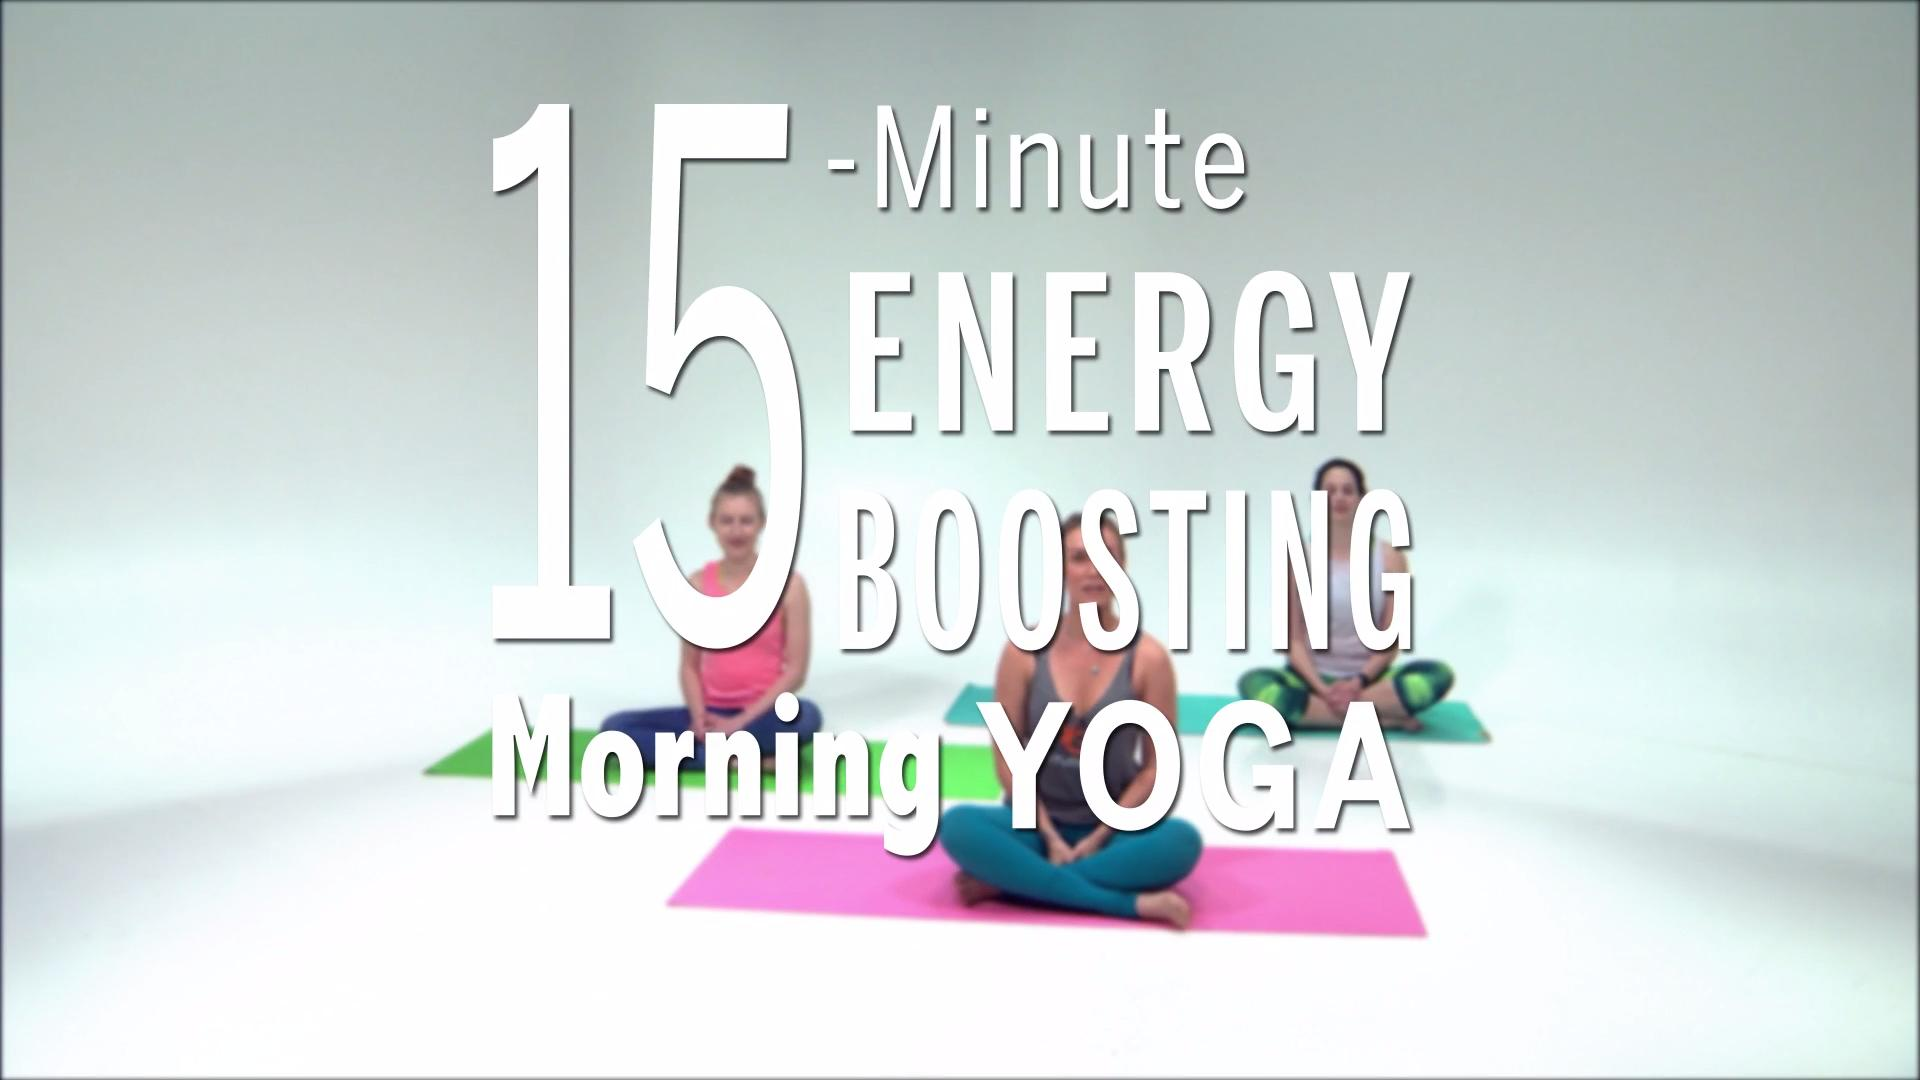 Energizing Morning Yoga Workout Video